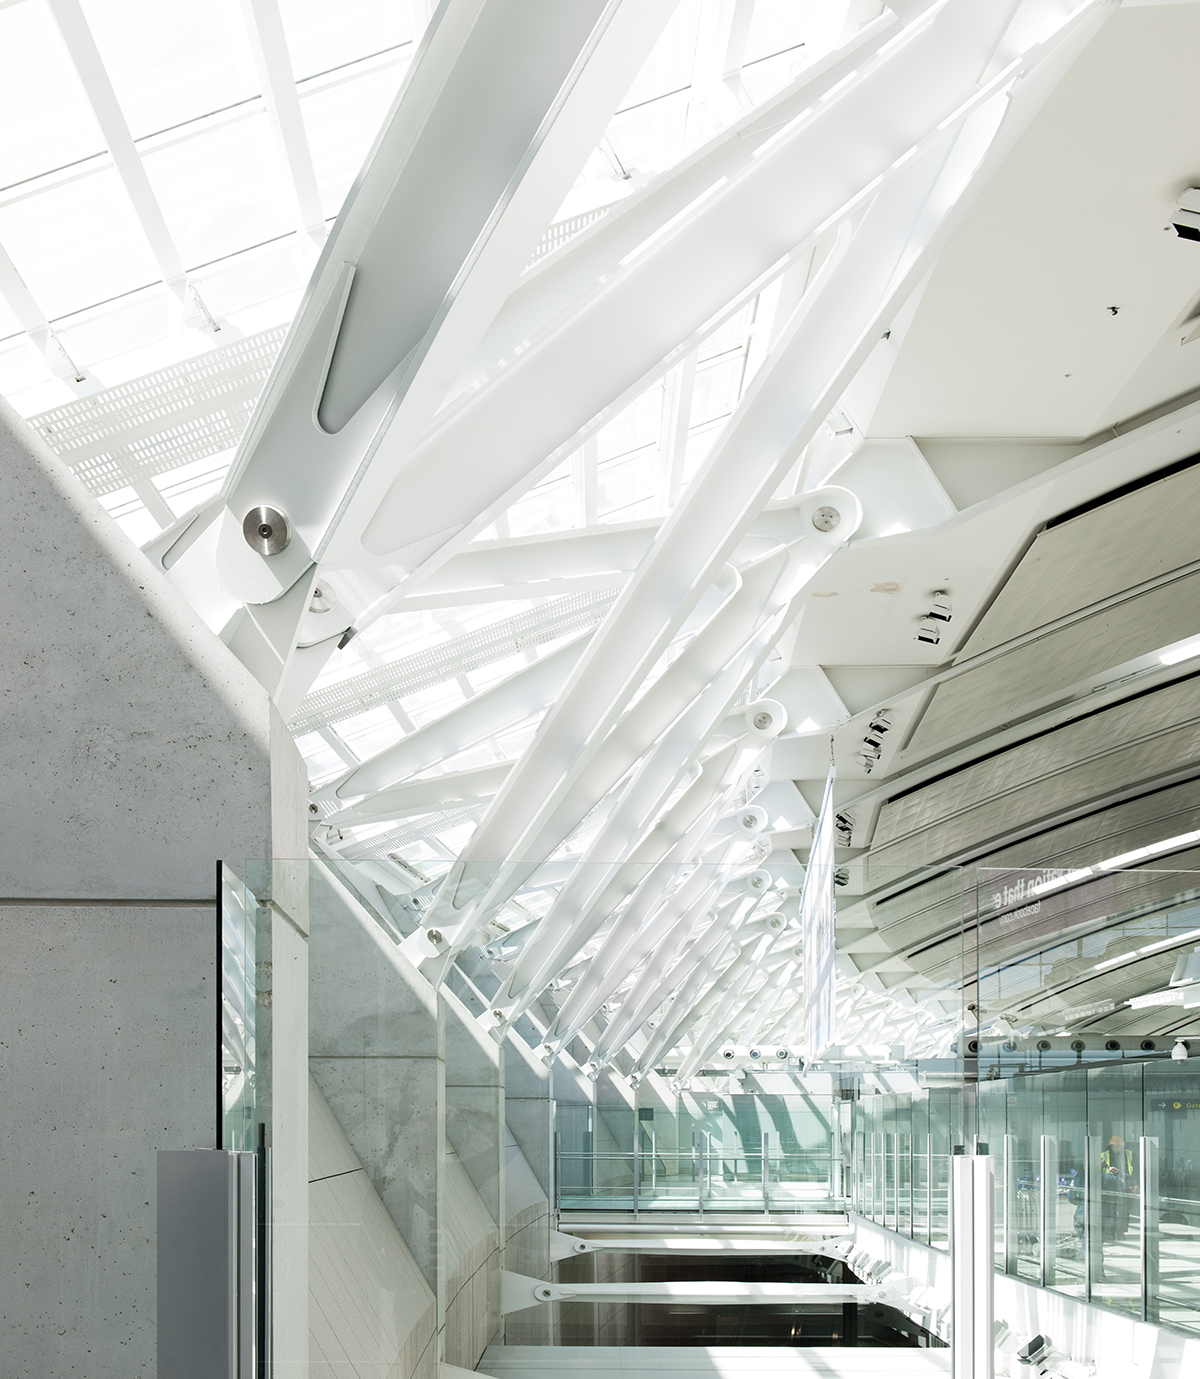 The Laird Co Pearson Airport Study Concrete Glass Steel Architecture Design Airport Avgeek Interiors Photography for site.jpg